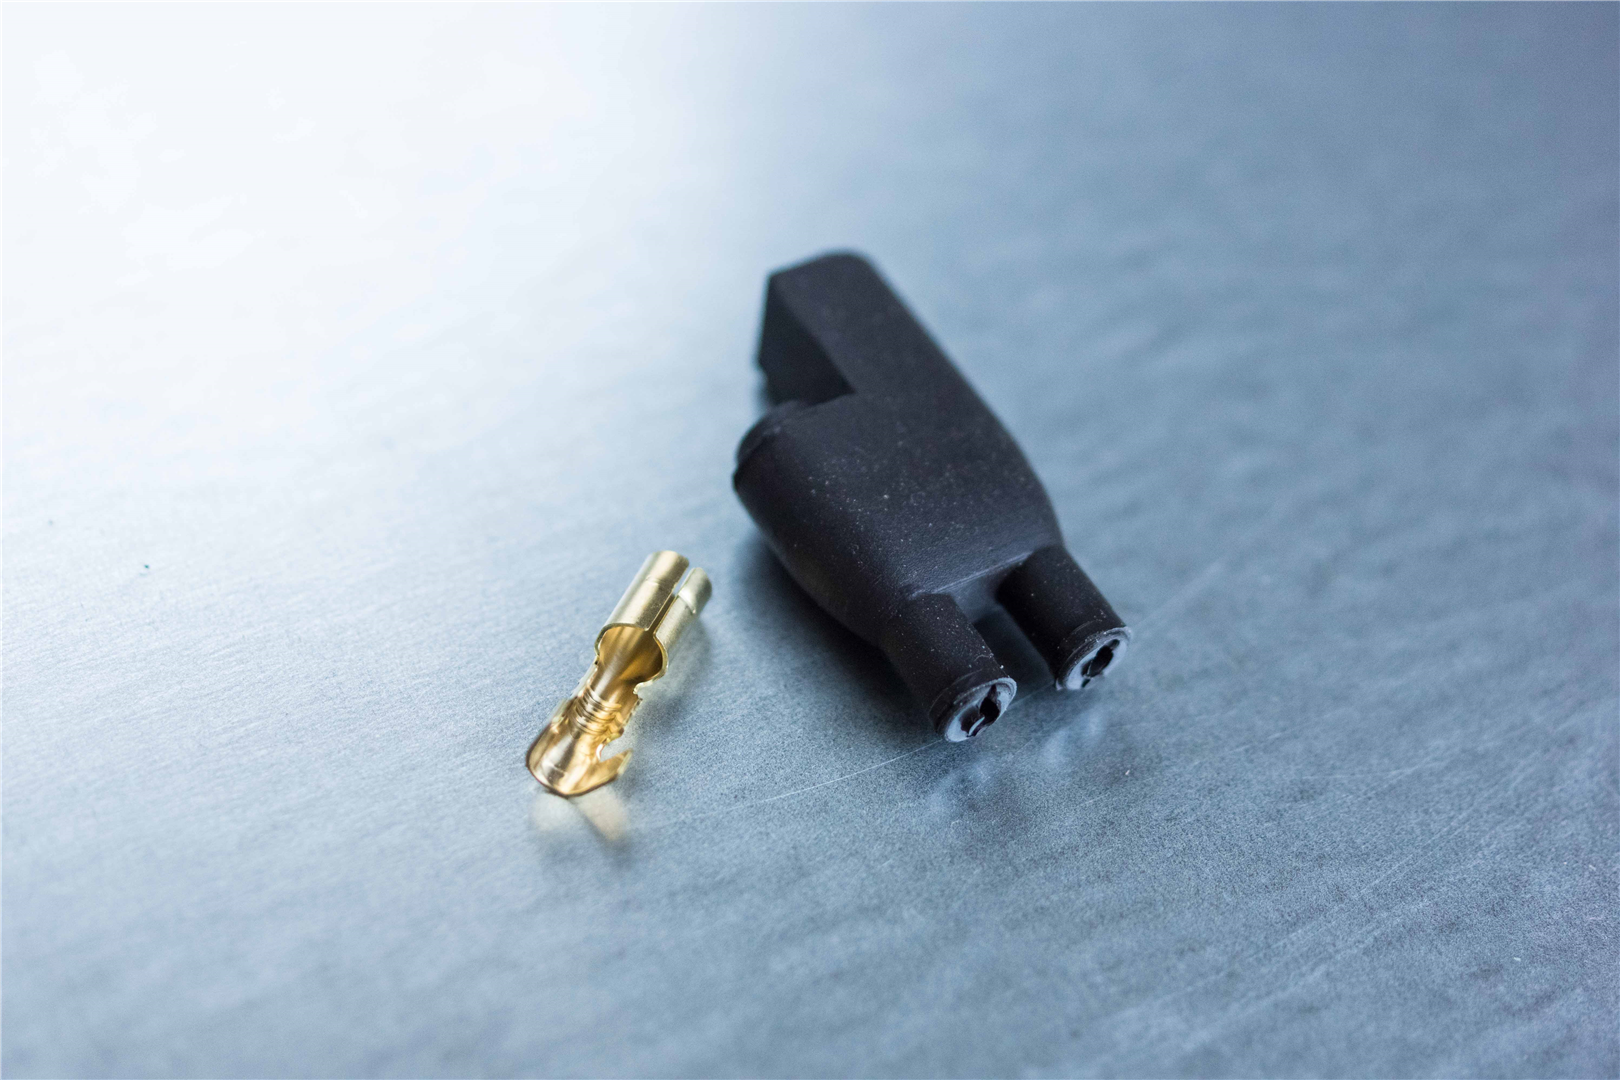 4mm 2-pin Black Rubber Connector